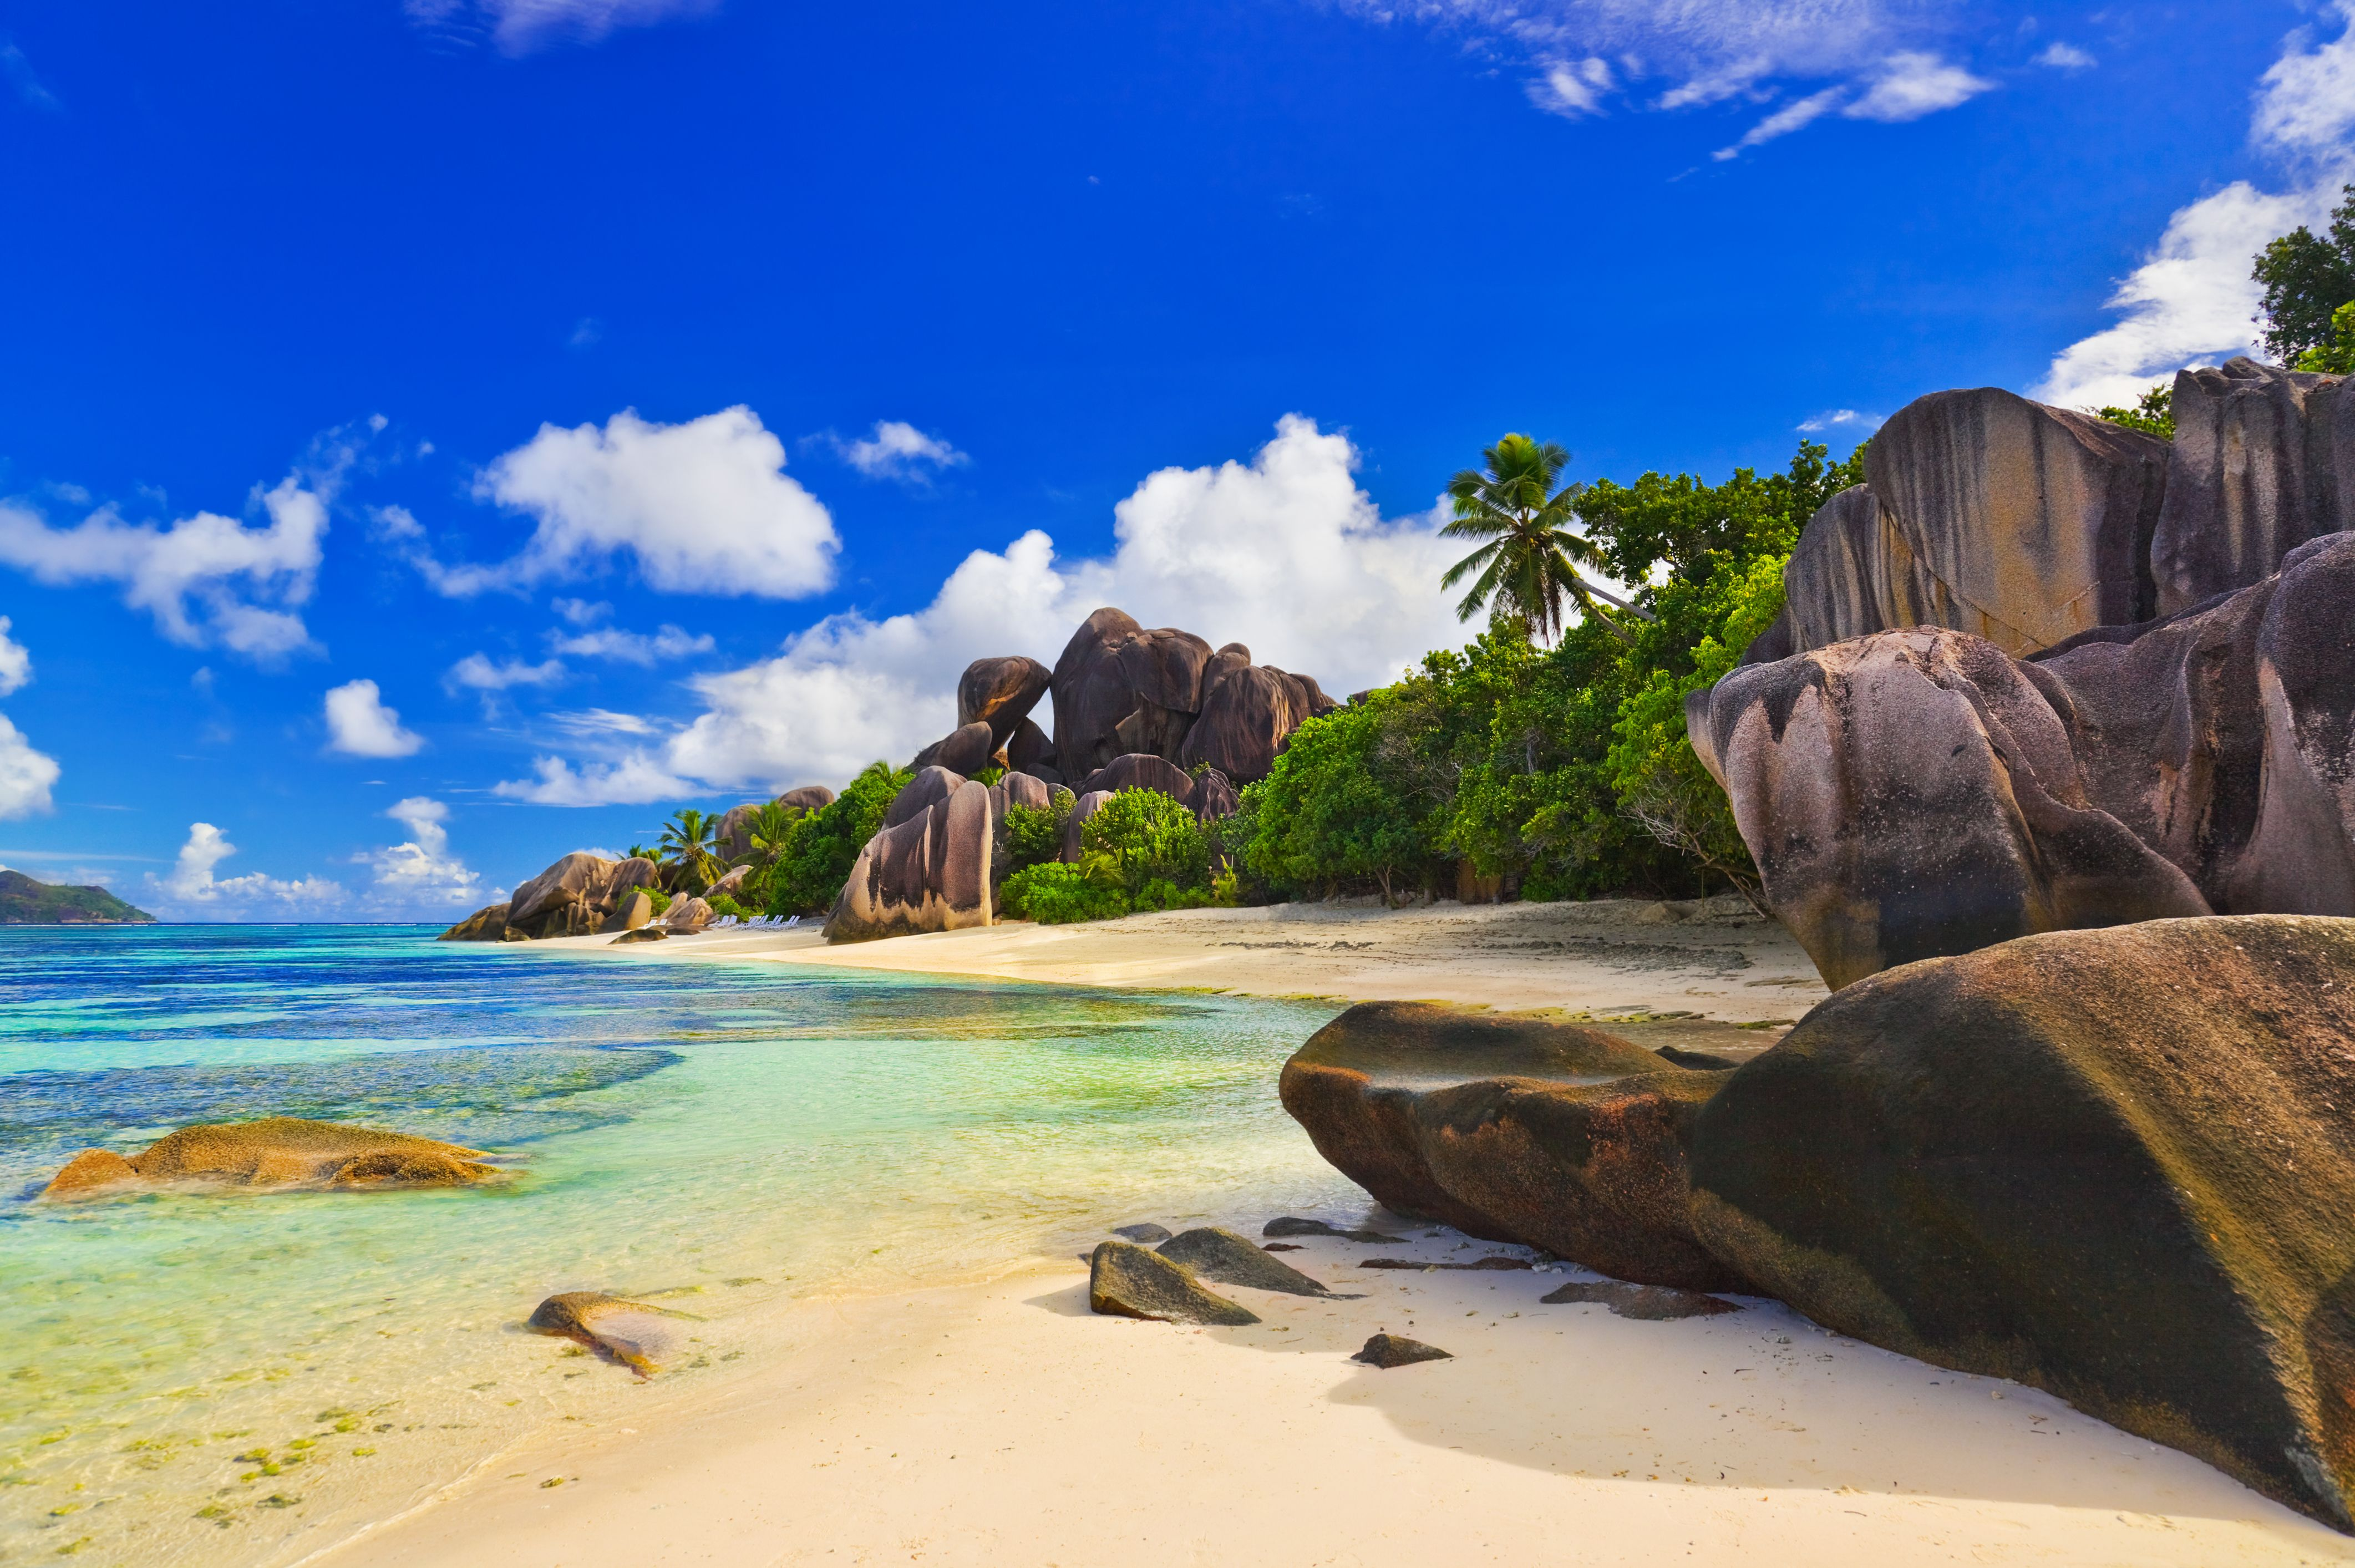 Seychelles Islands... Look how blue that sky is! 'sigh'